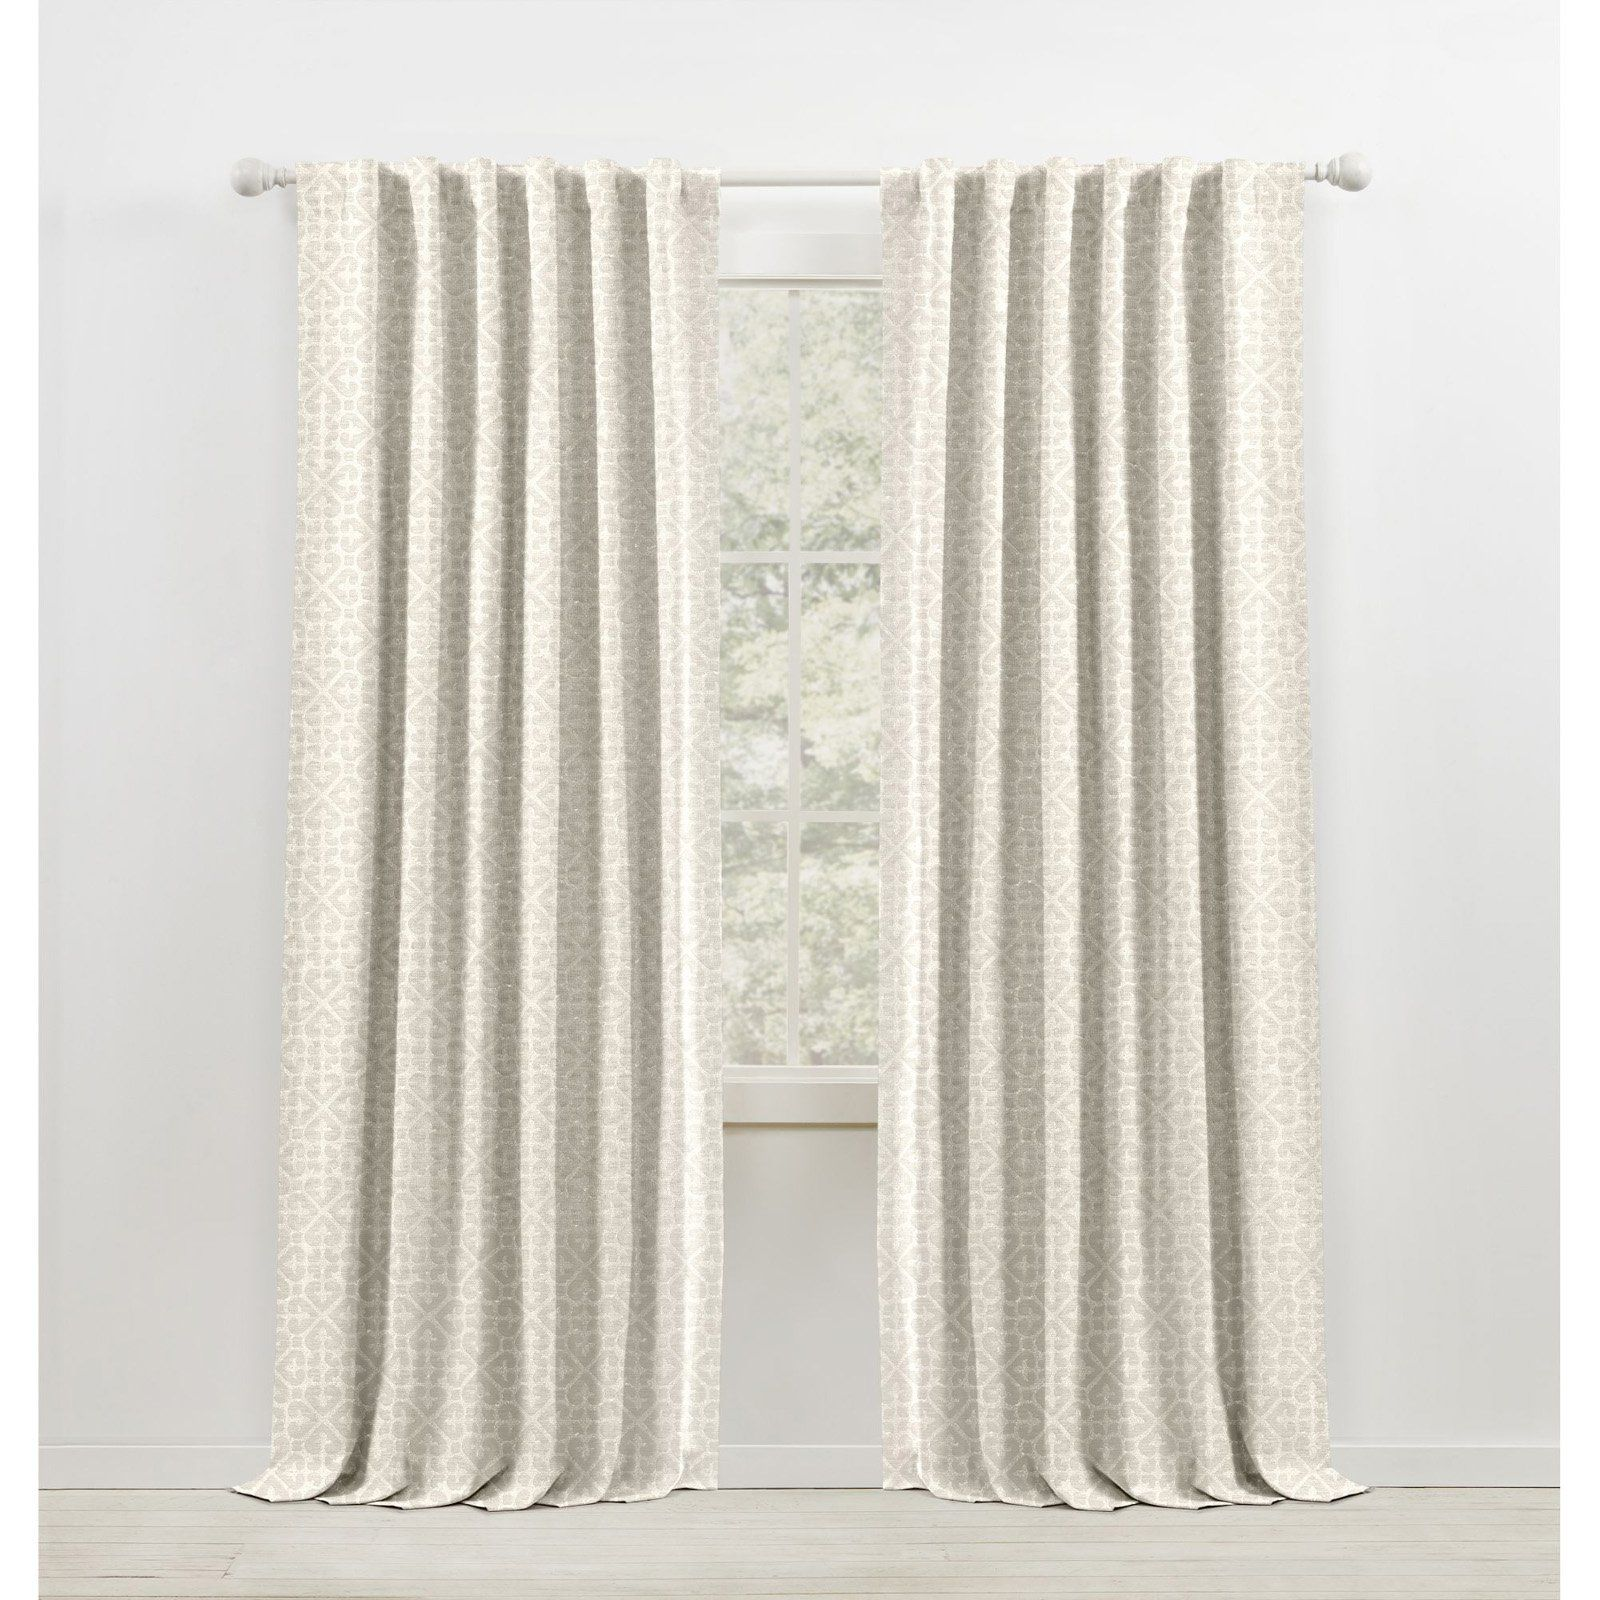 Lauren Ralph Lauren Terrain Blackout Soft Pattern Jacquard Woven With Lining Rod Pocket Curtain Panel Snowflake Rod Pocket Curtains Panel Curtains Colorful Curtains